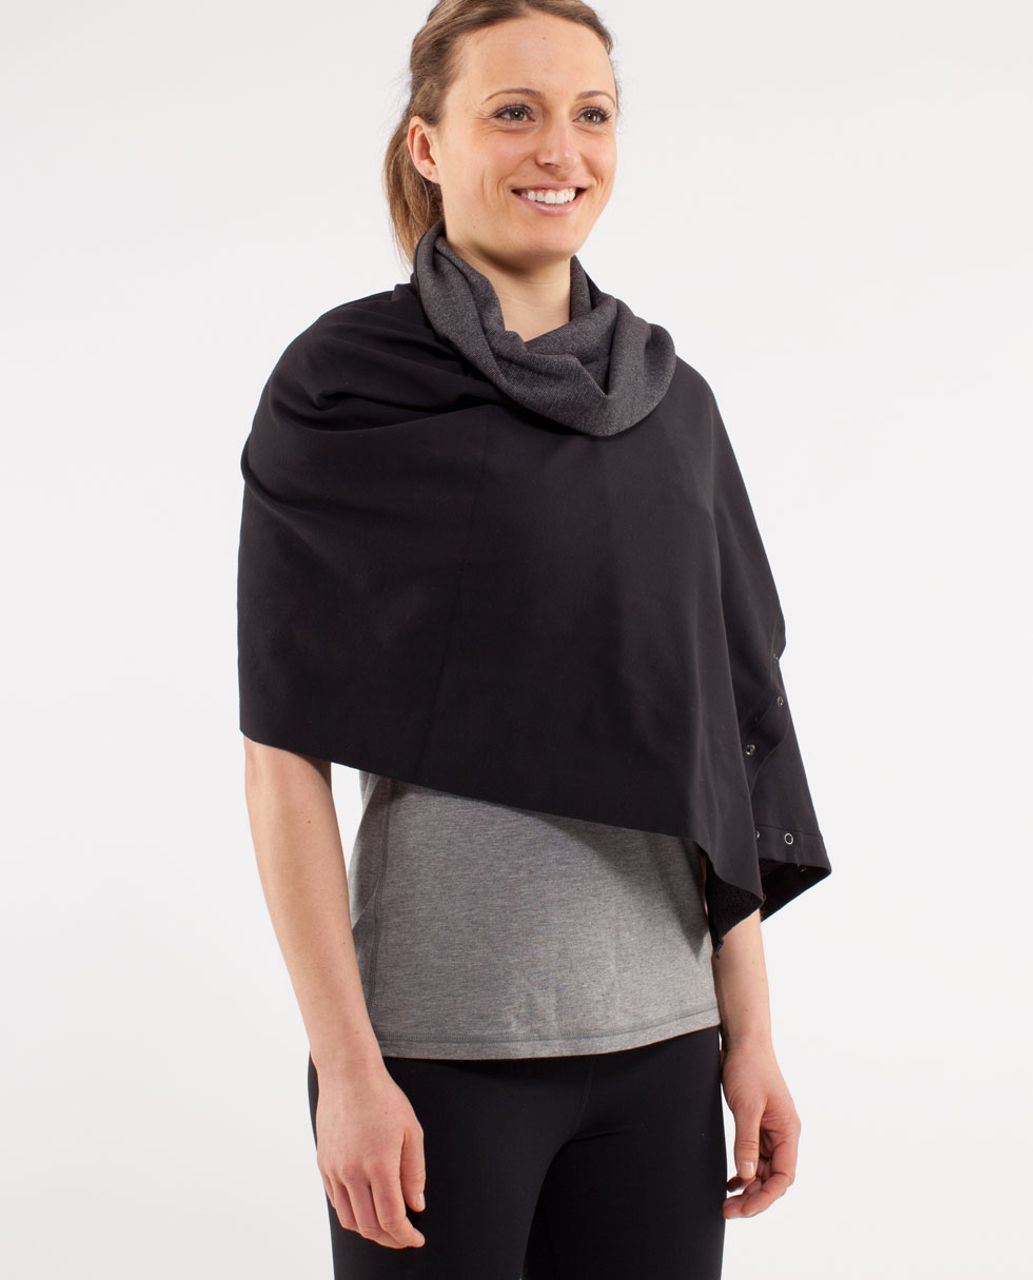 Lululemon Vinyasa Scarf - Black /  Wee Stripe Black Heathered Black